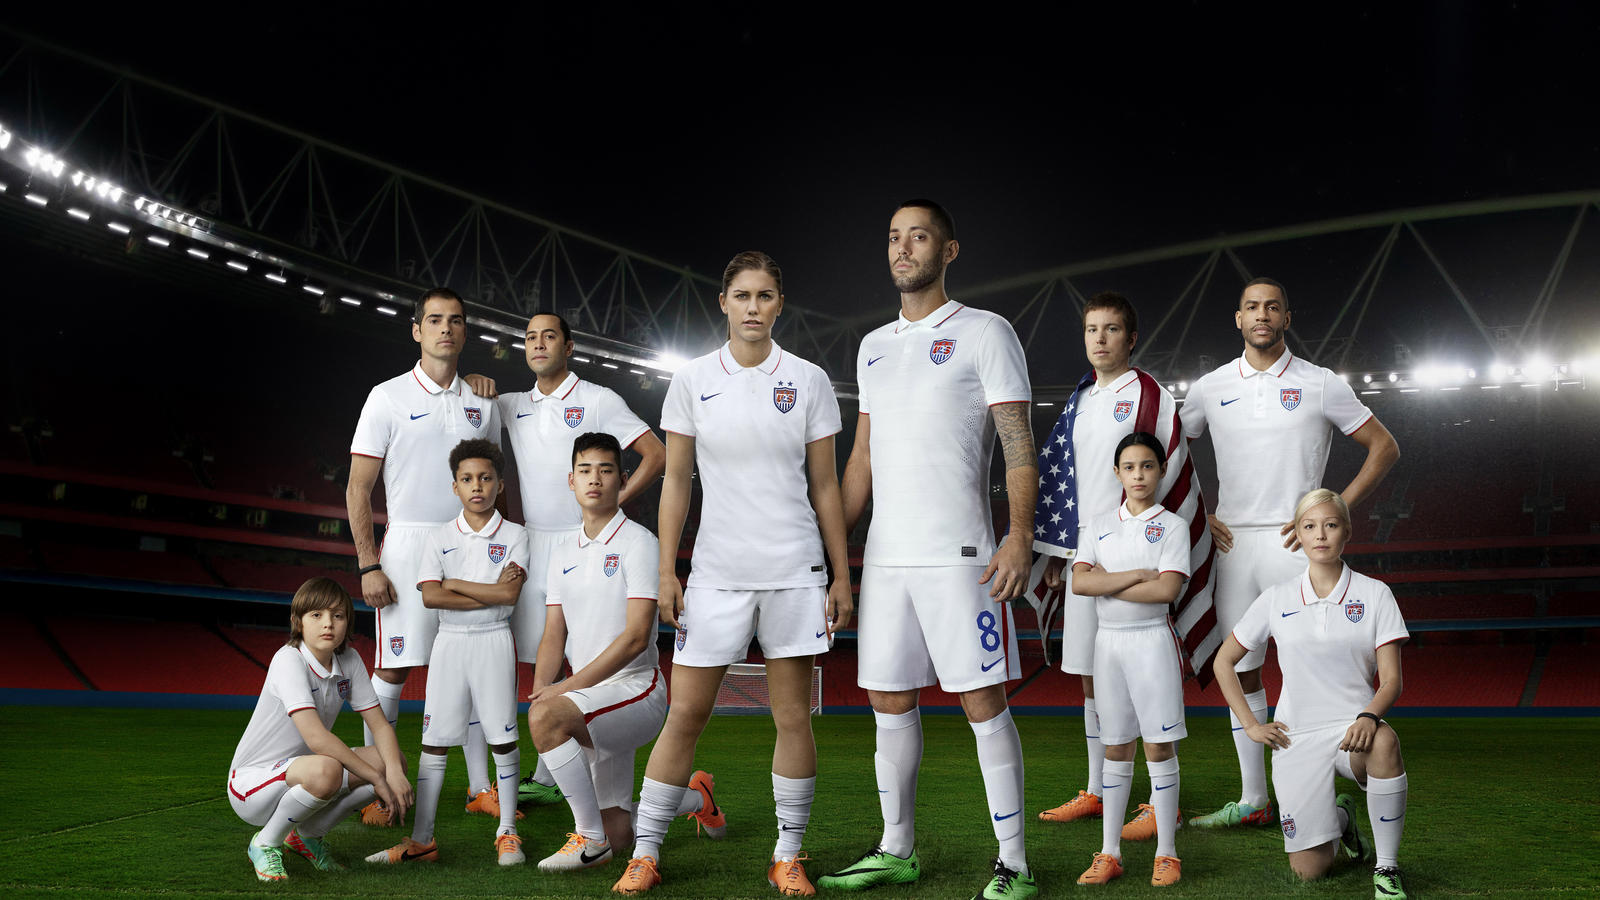 US_Soccer_Team_Image